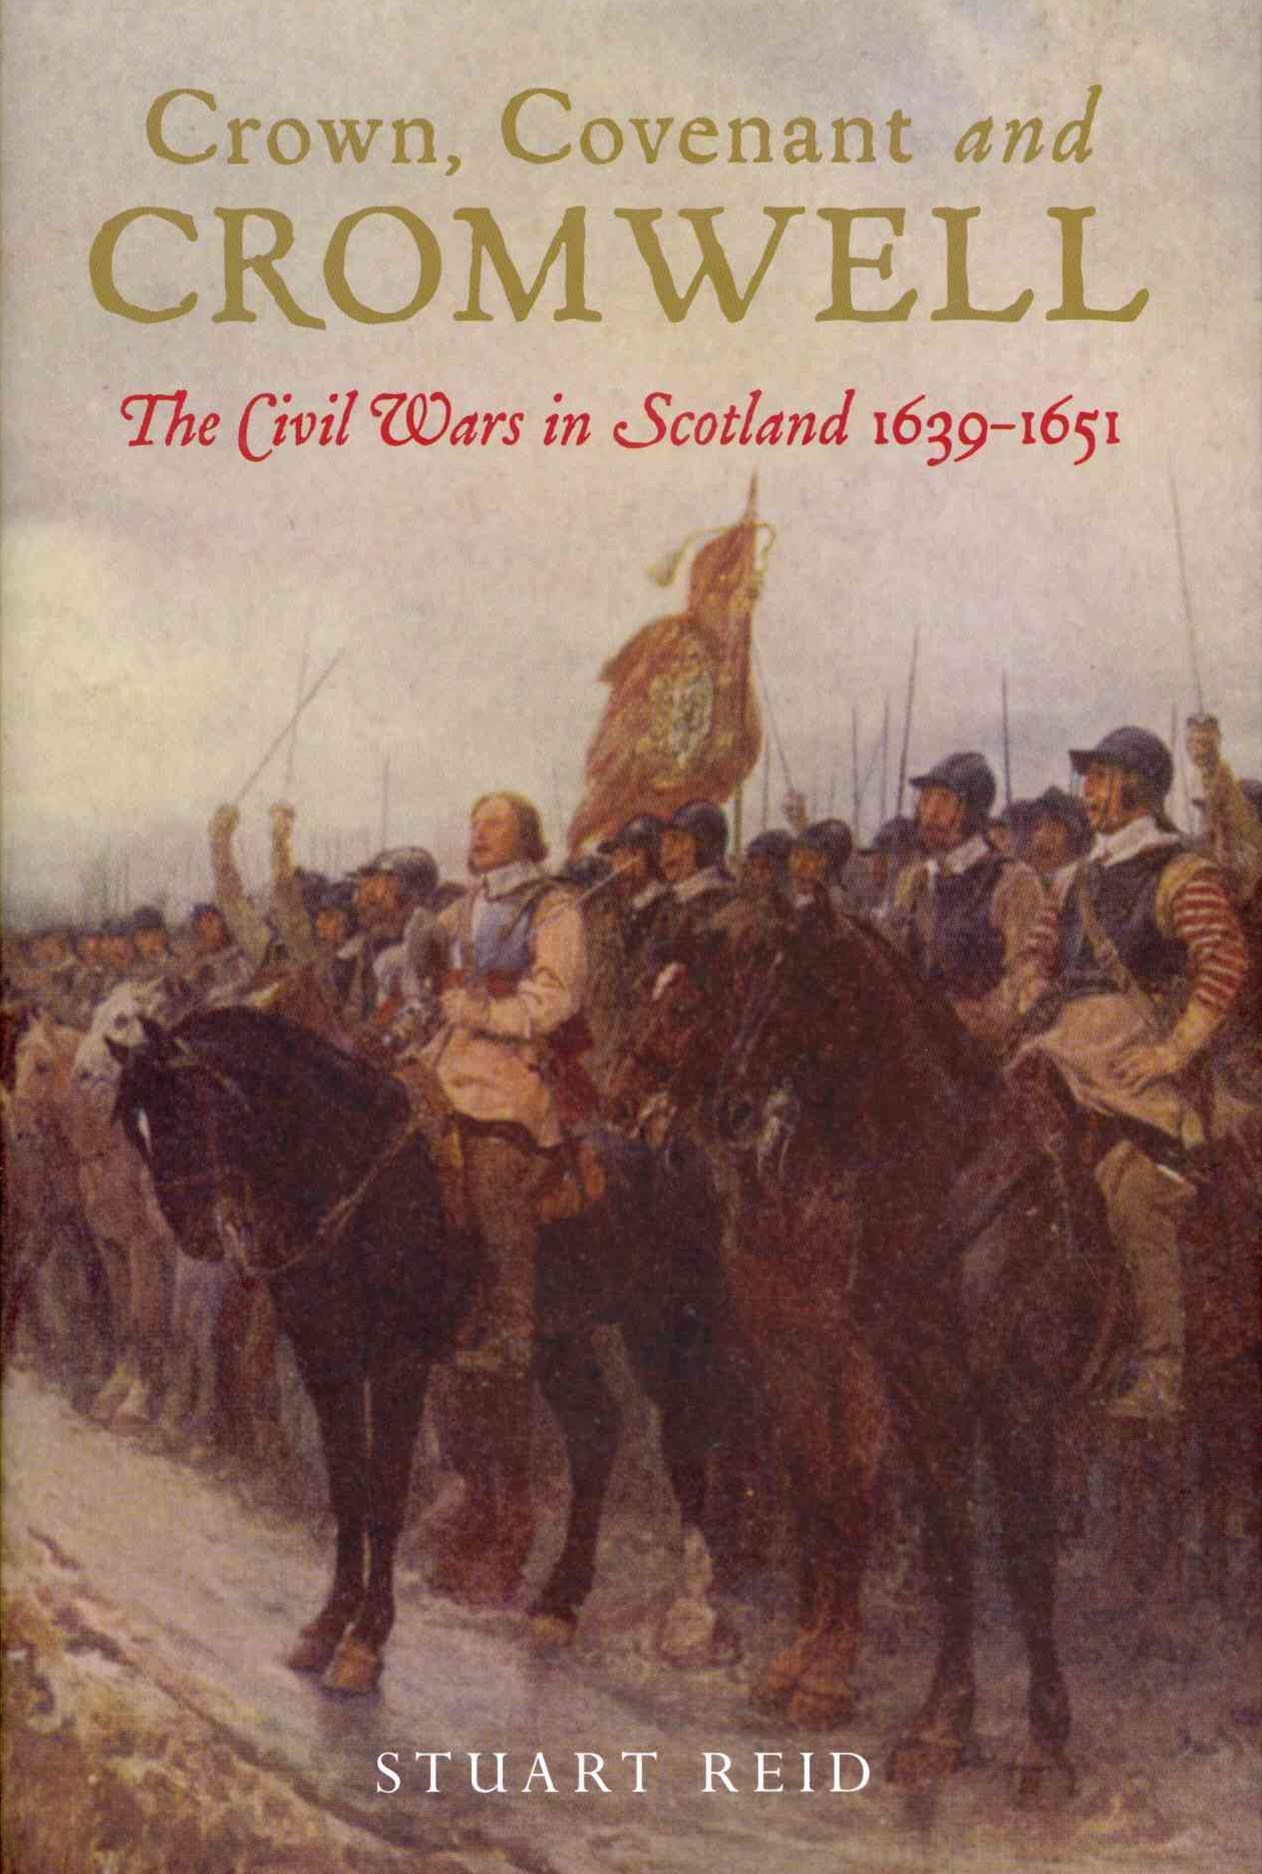 Crown Covenant and Cromwell: The Civil Wars in Scotland 1639-1651